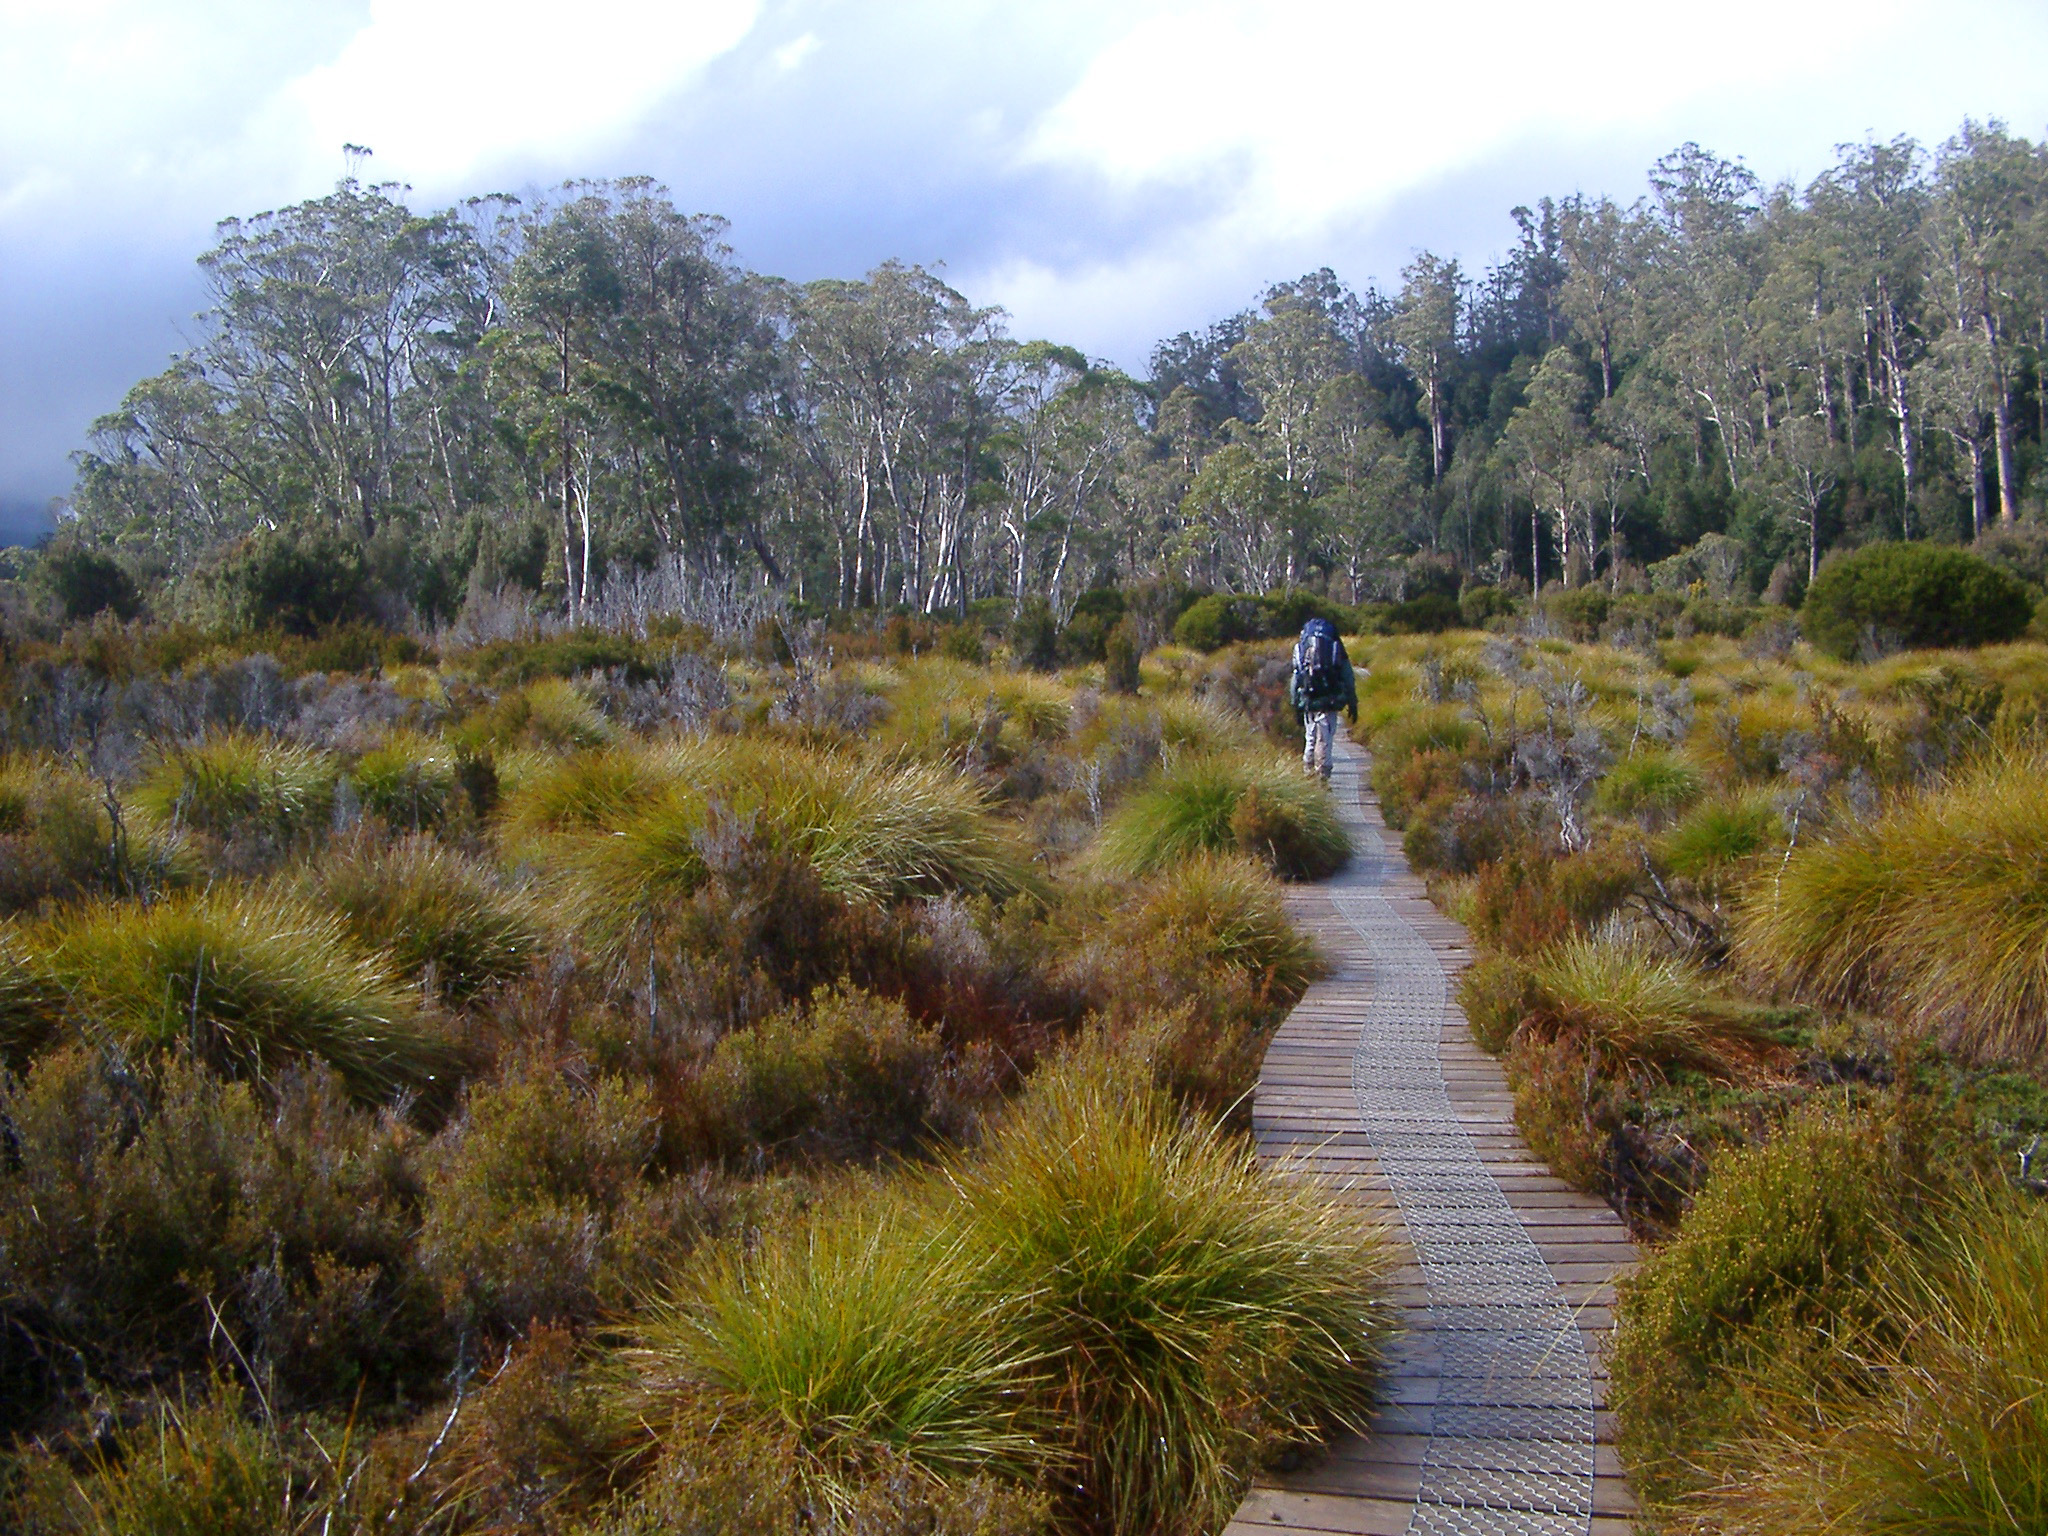 Person walking on a wooden boardwalk on the Tasmania Overland Trail leading across grassland with tufts of button grass towards distant woodland trees